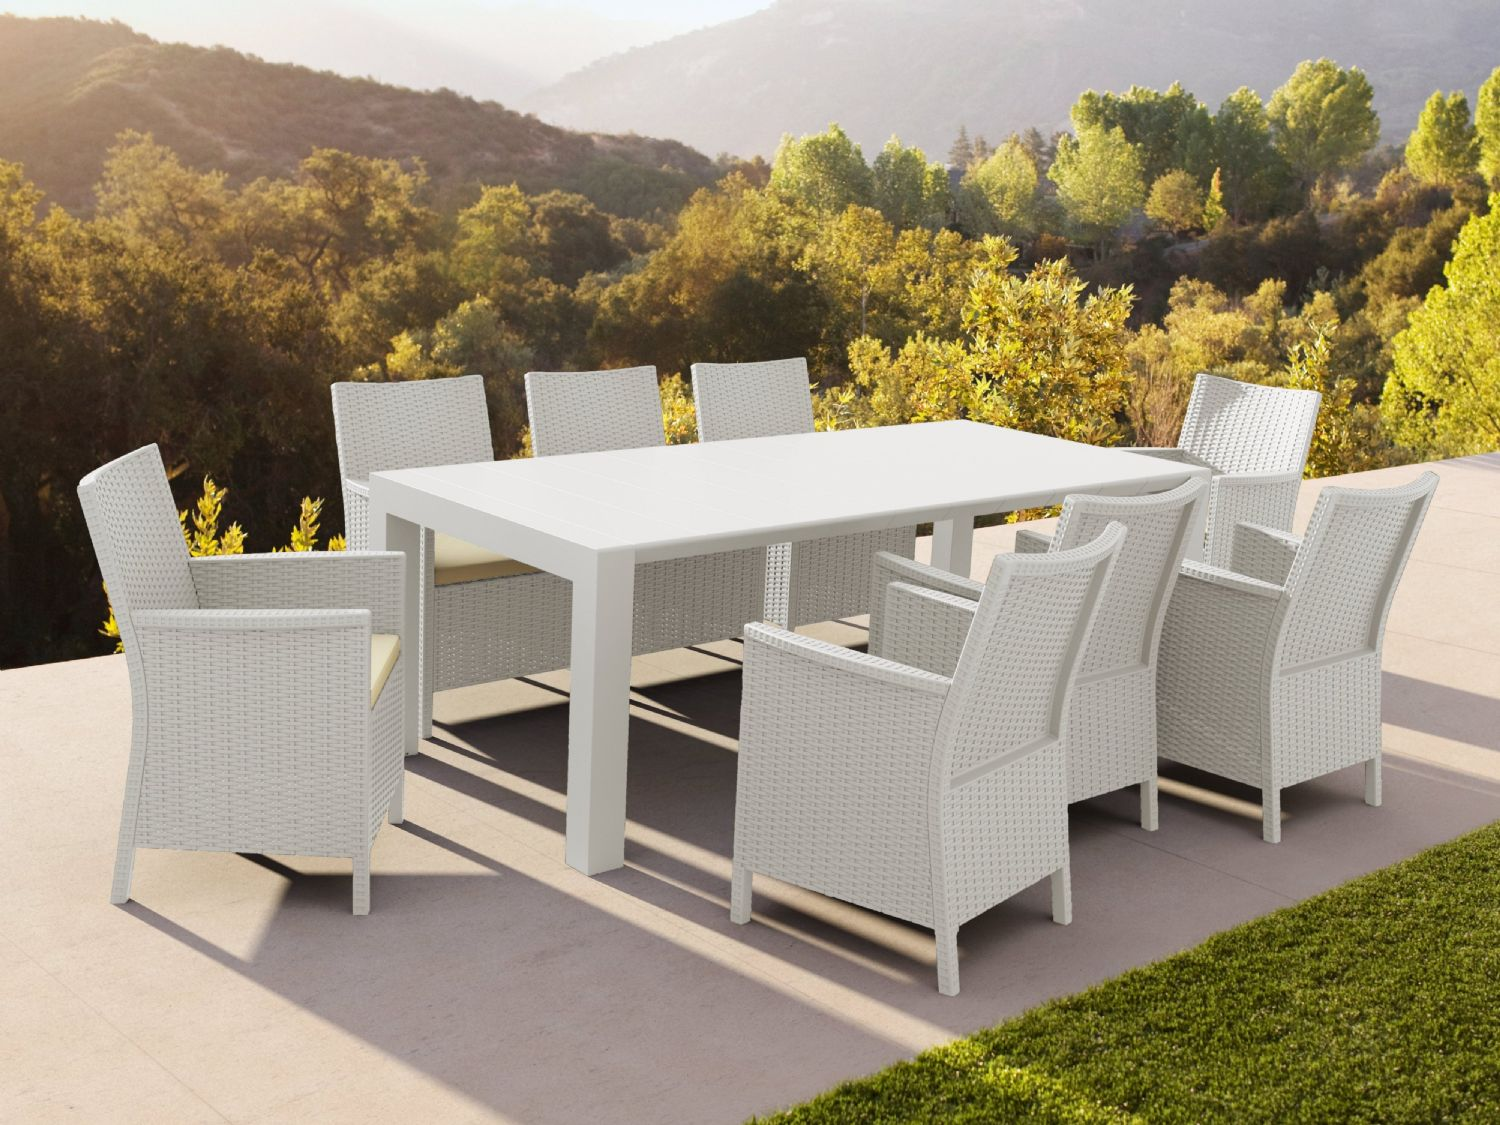 California Extendable Dining Set 9 Piece White ISP8066S-WH - 3